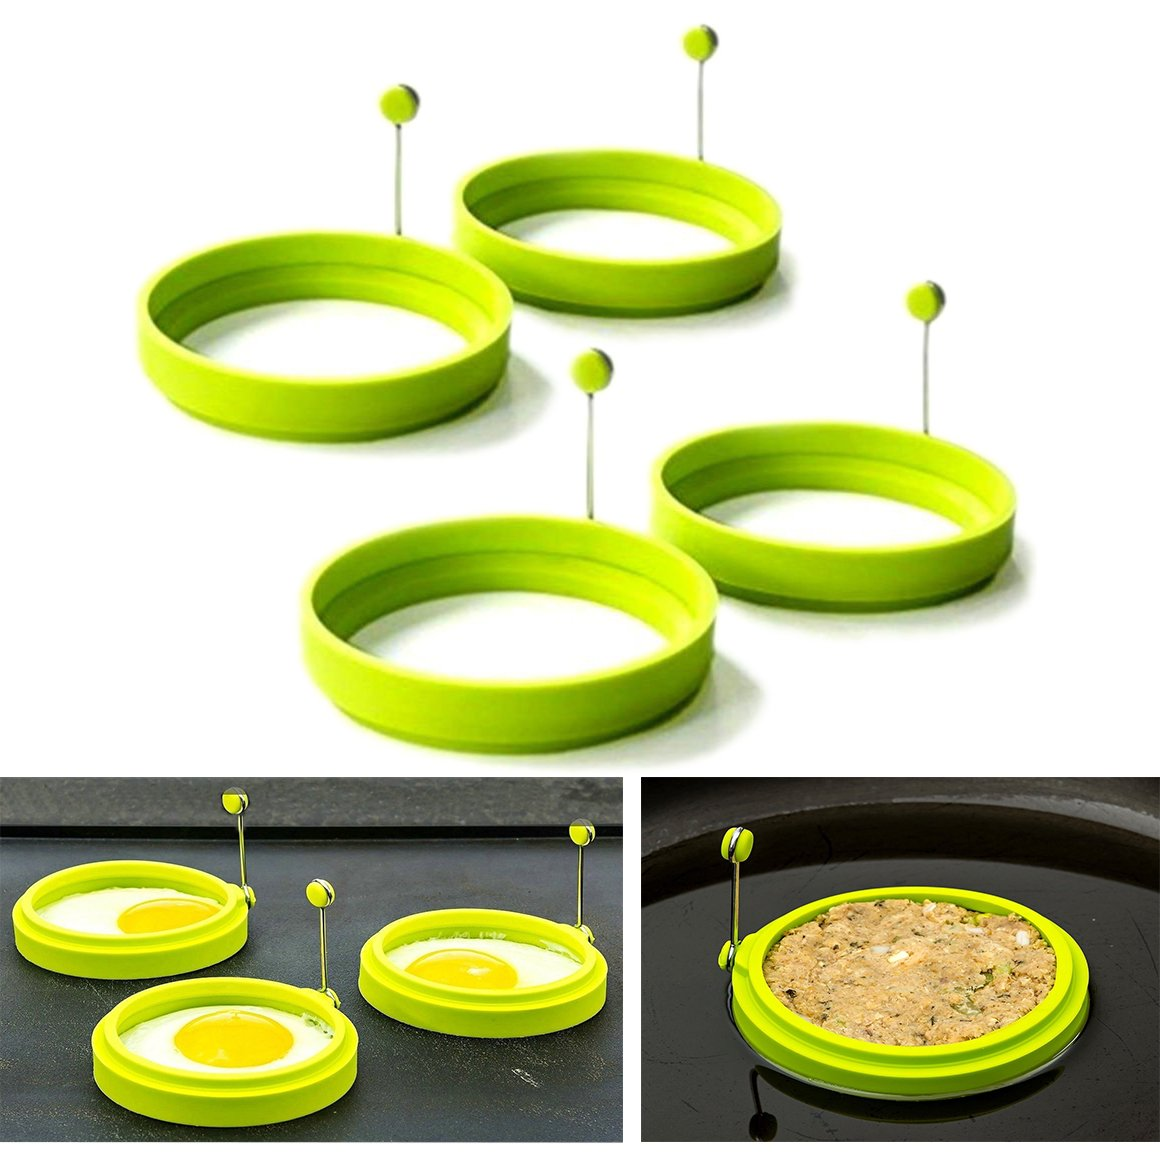 Cisixin Fried Egg Rings Non Stick Pancake Molds Silicone Cooking Rings Round with Handle for Frying Pack of 4